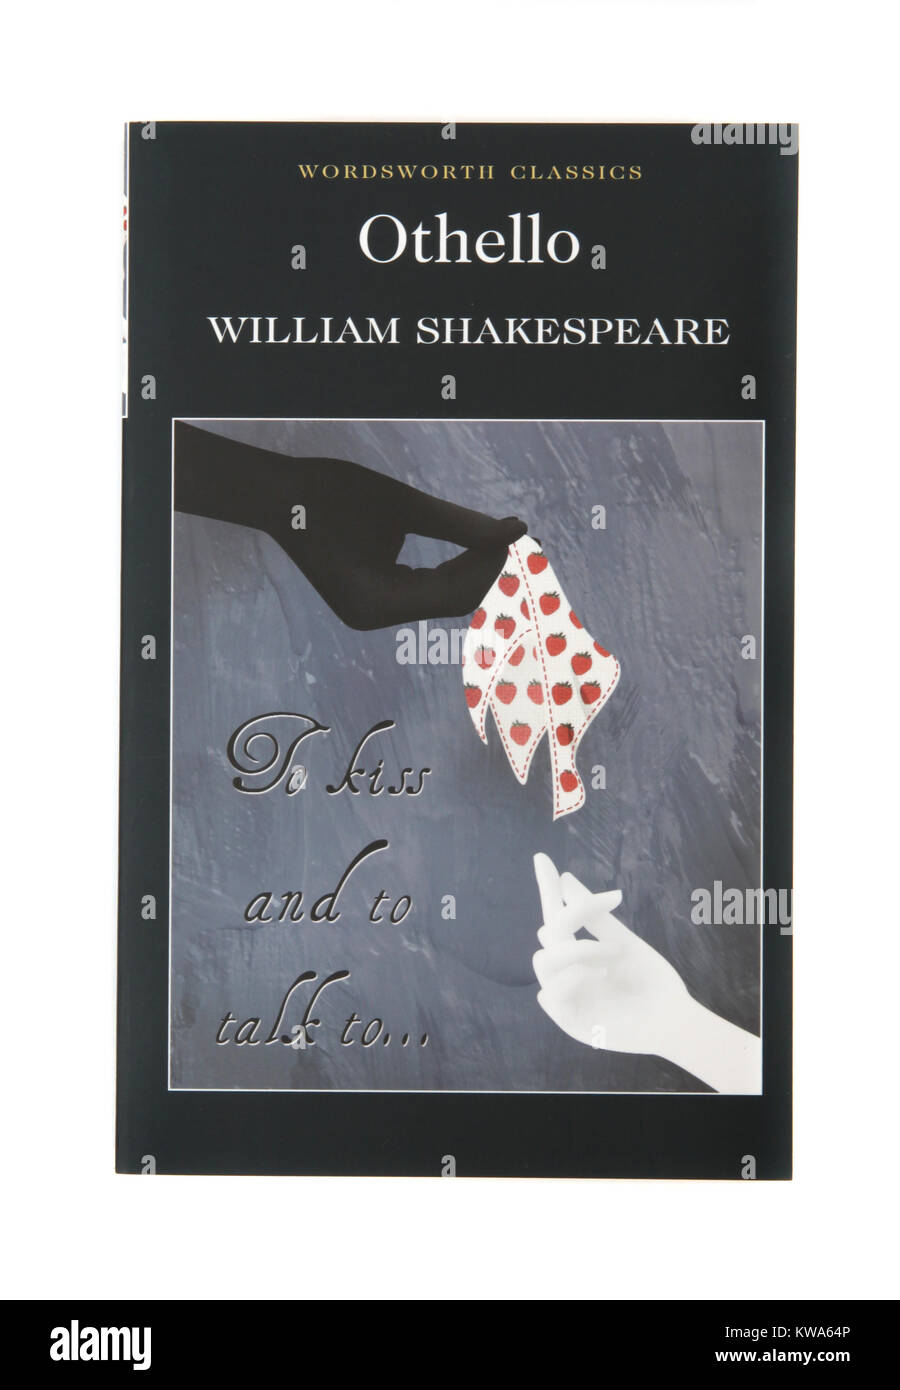 a summary of the play othello by william shakespeare The tragedy of othello the moor of venice lesson plans by shakespeare follows the tragic hero with our othello summary, othello characters, plot diagram.